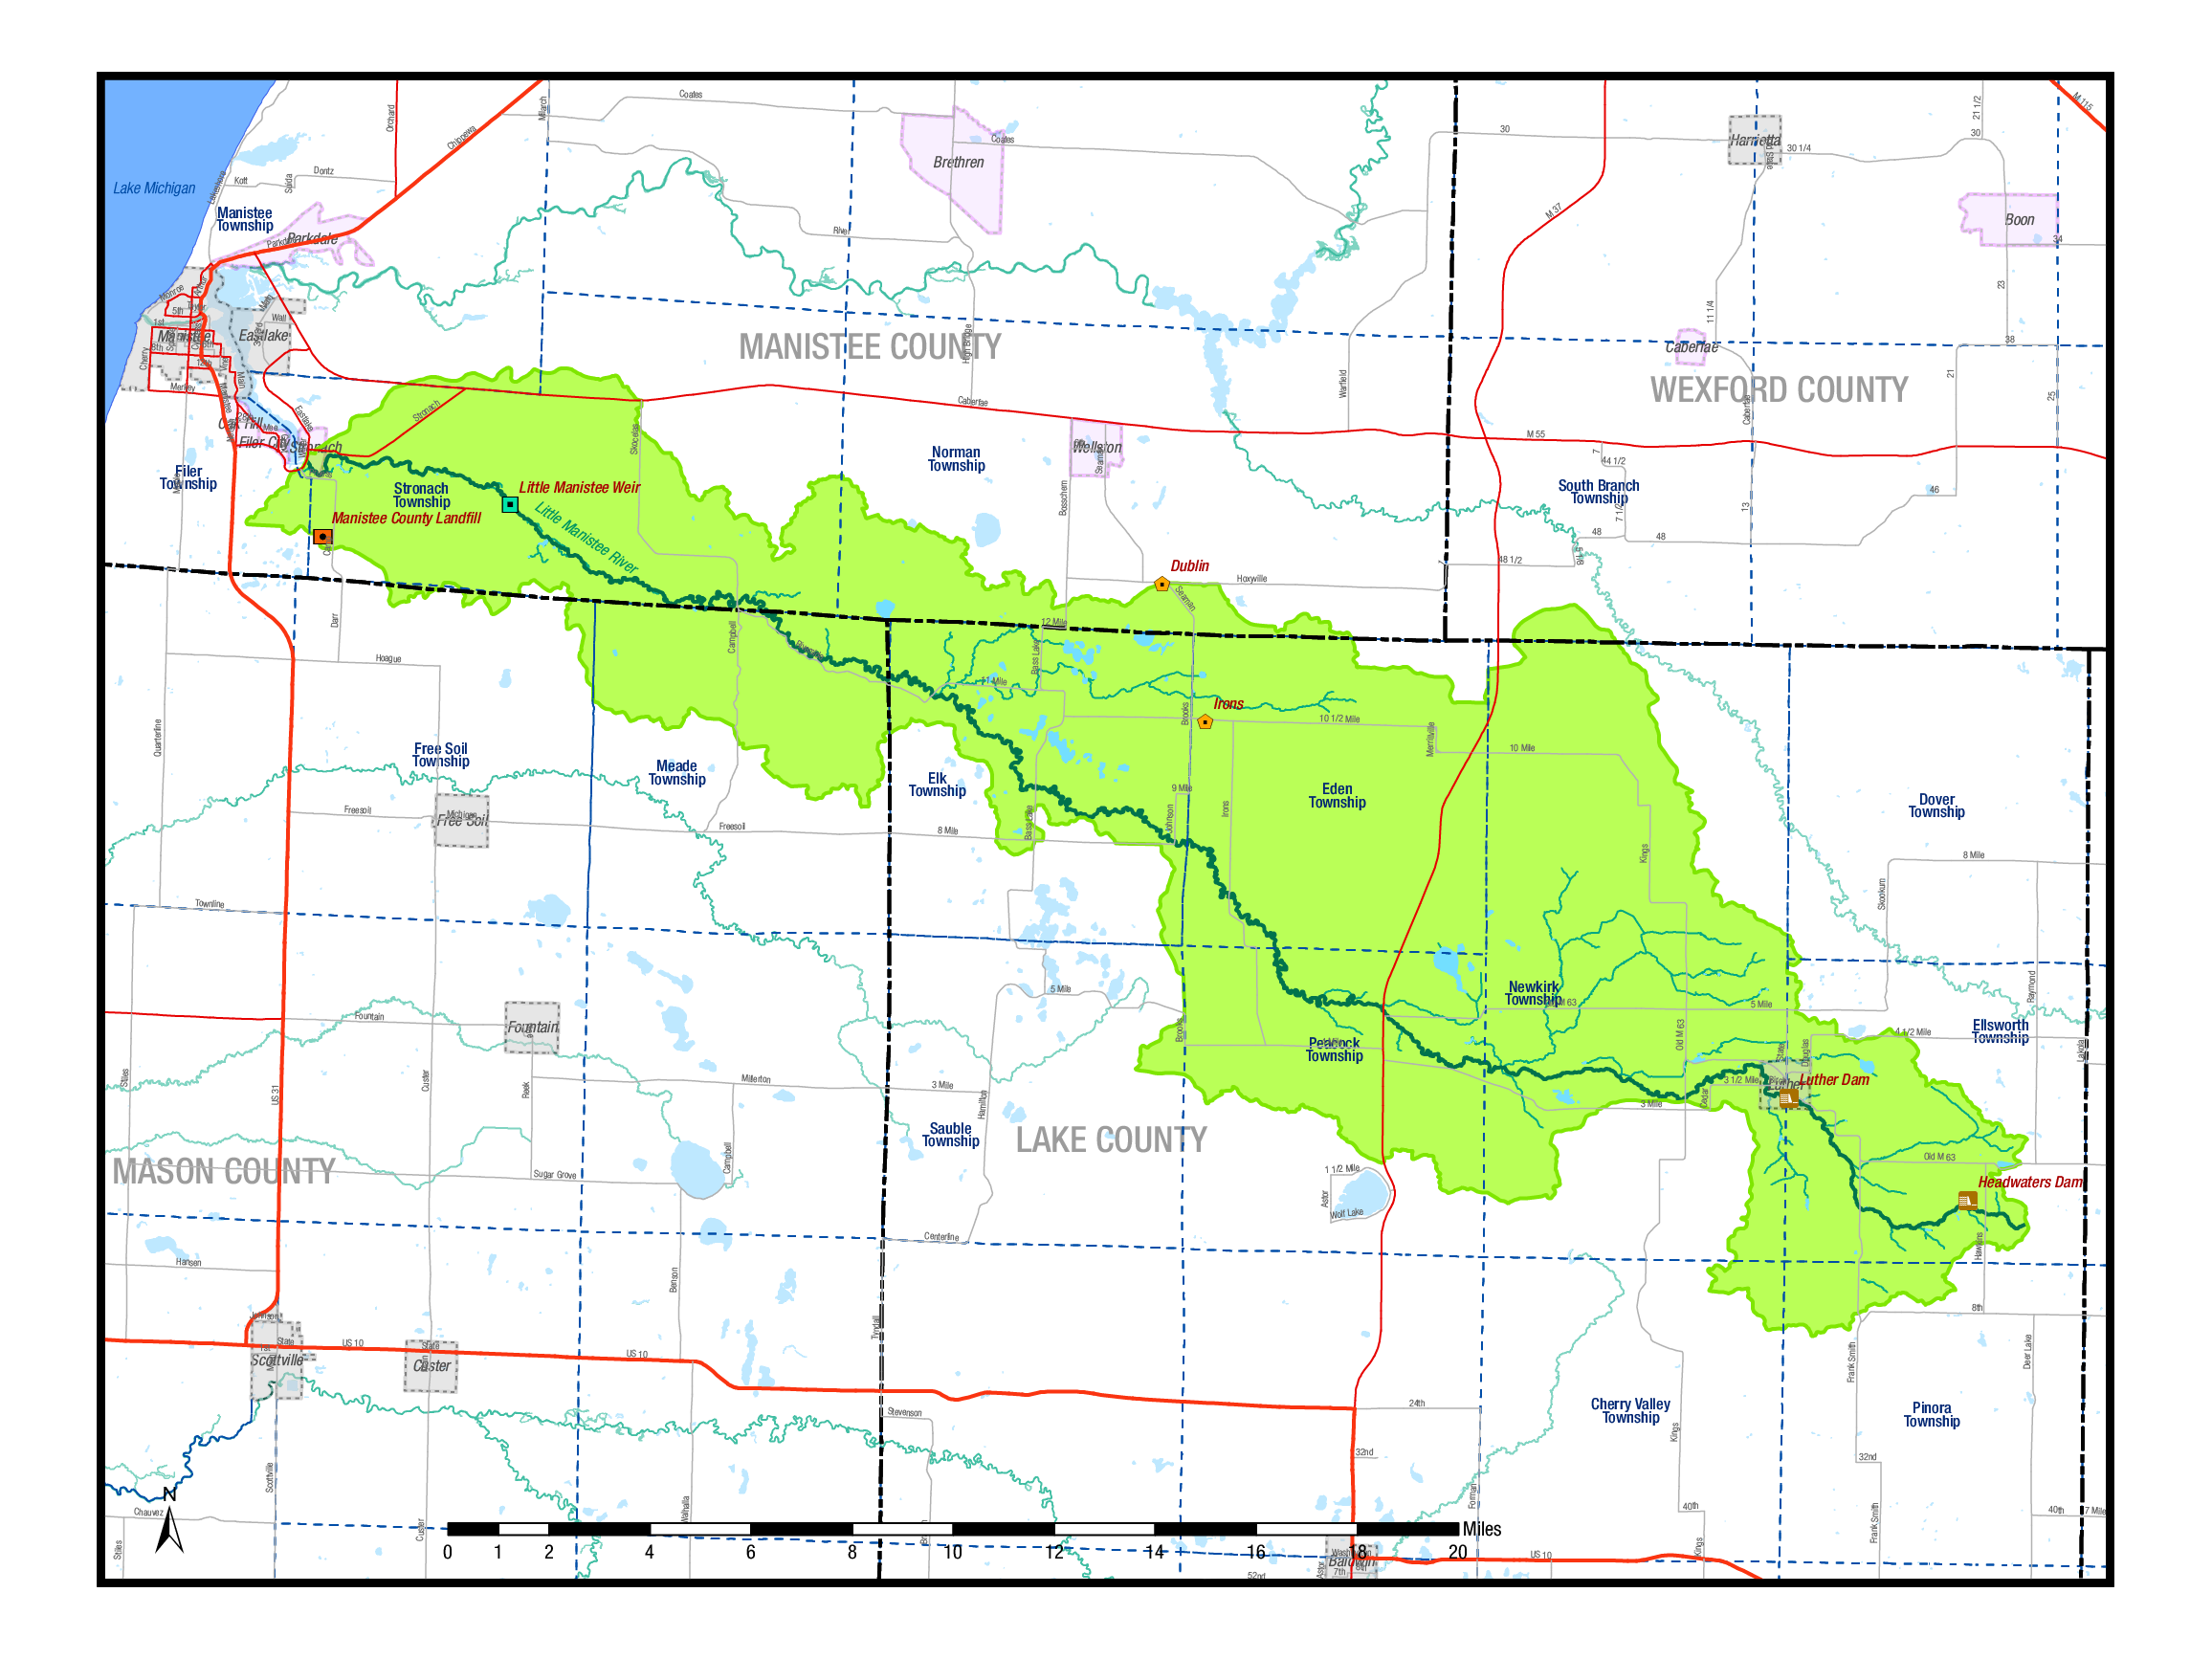 Little Manistee Watershed (green shaded area)